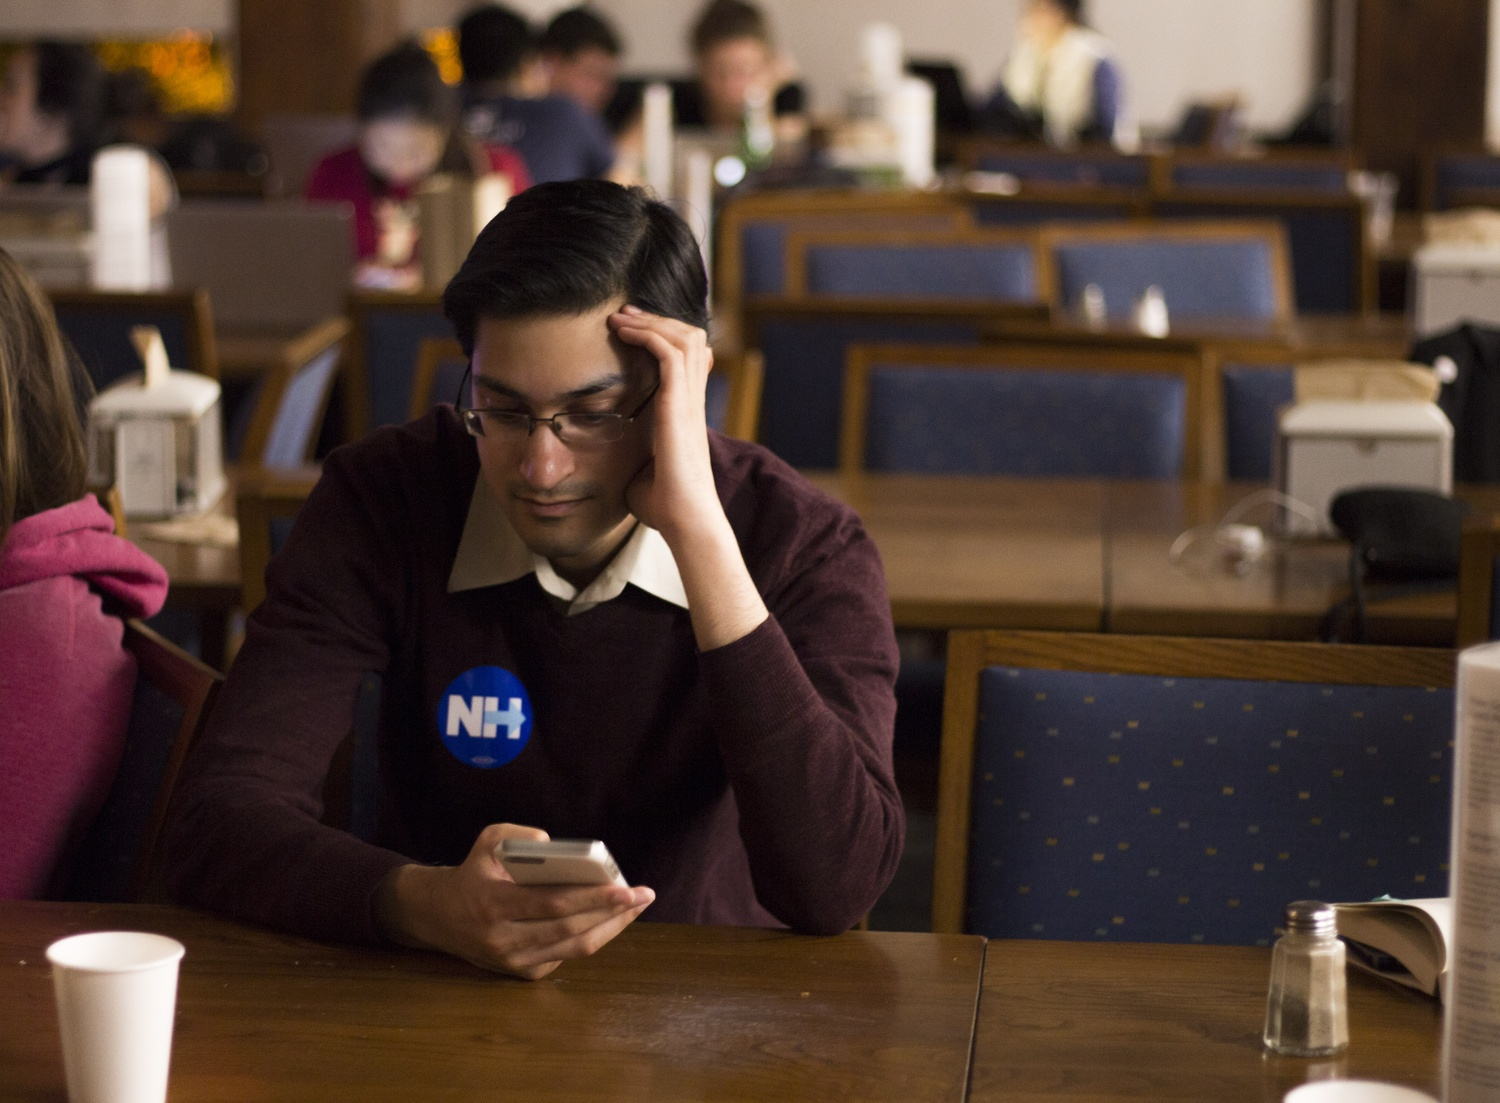 Rush Doshi, donning a Hillary Clinton sticker, checks his phone in despair shortly after the announcement of Donald Trump winning Ohio. Doshi attended the watch party in Quincy dining hall Tuesday night.